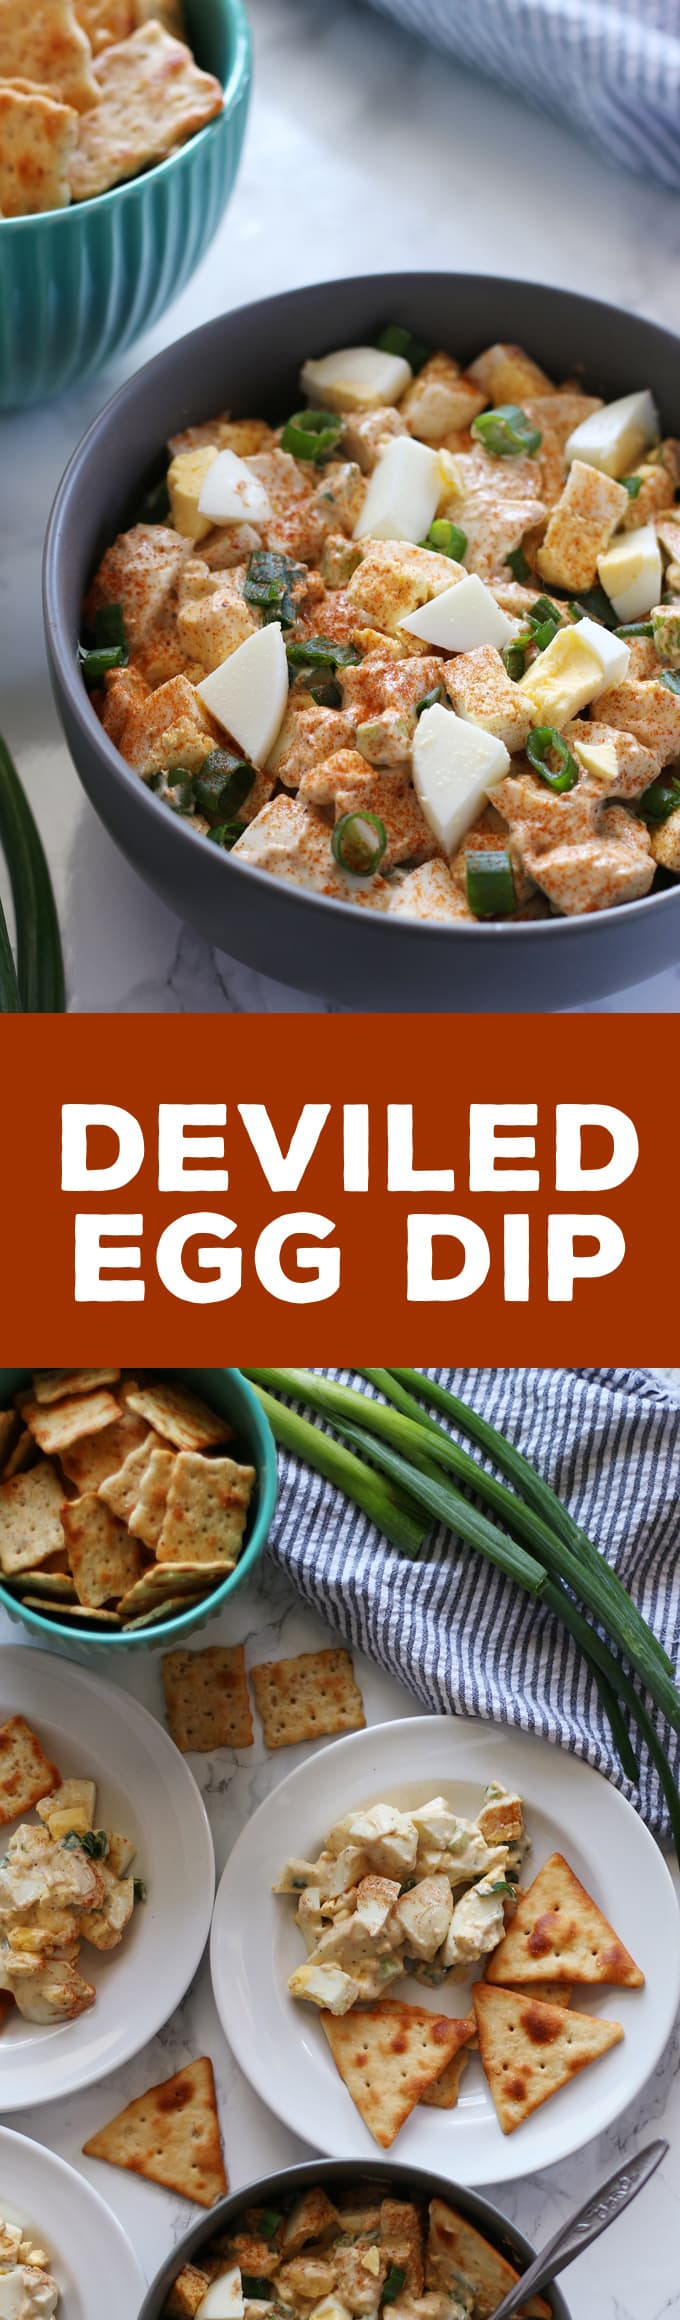 Deviled egg dip is perfect for using up extra hard boiled eggs. It is a chunky dip and is perfect for Easter and holiday parties! | honeyandbirch.com